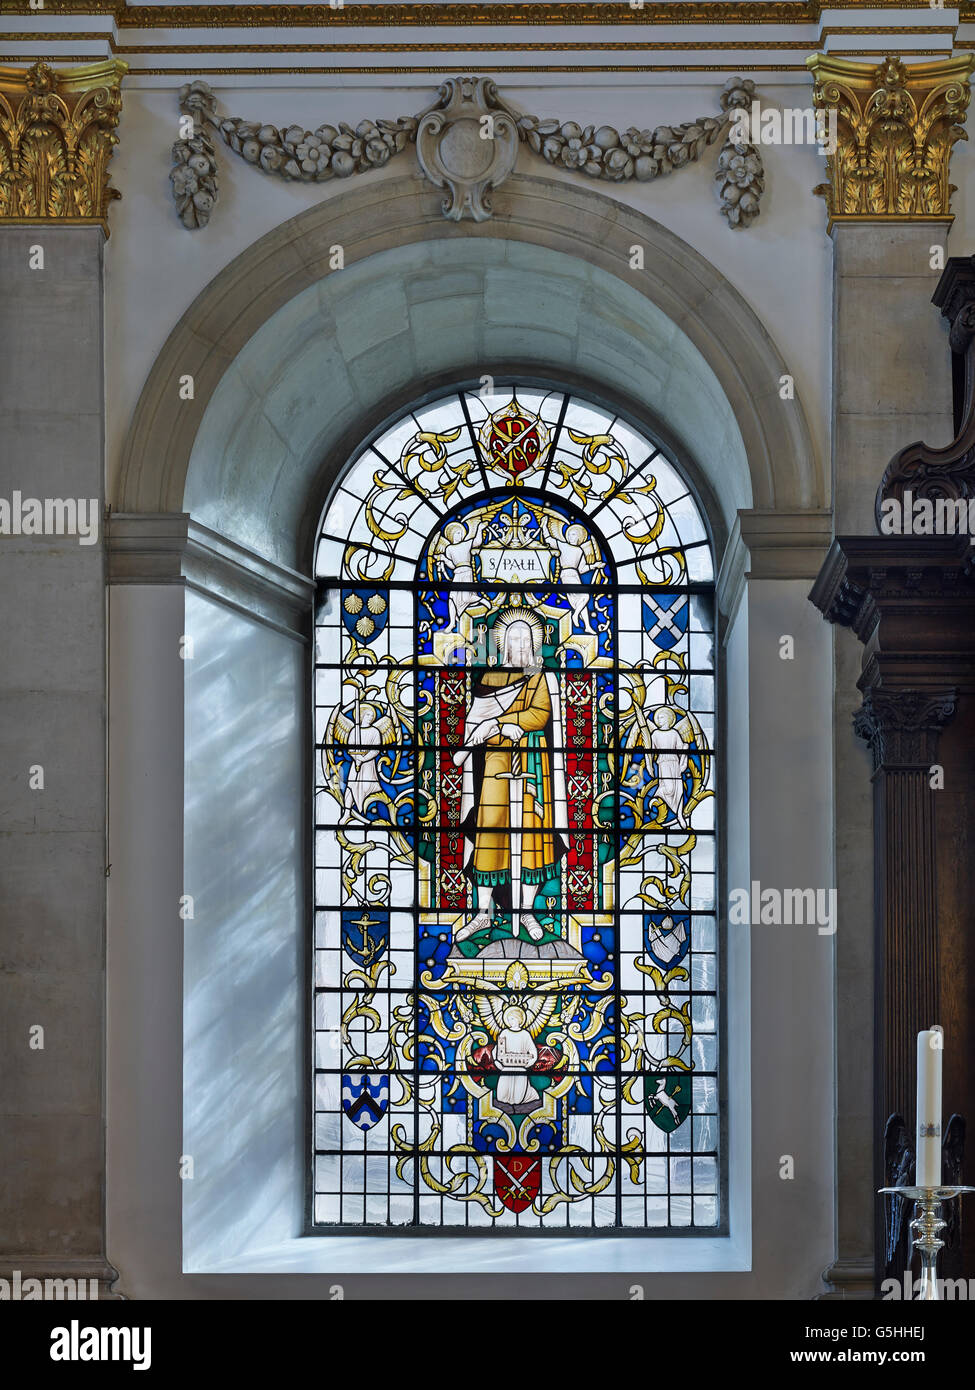 St Lawrence Jewry, church in the City of London. 1950s window of St Paul by Christopher Webb - Stock Image